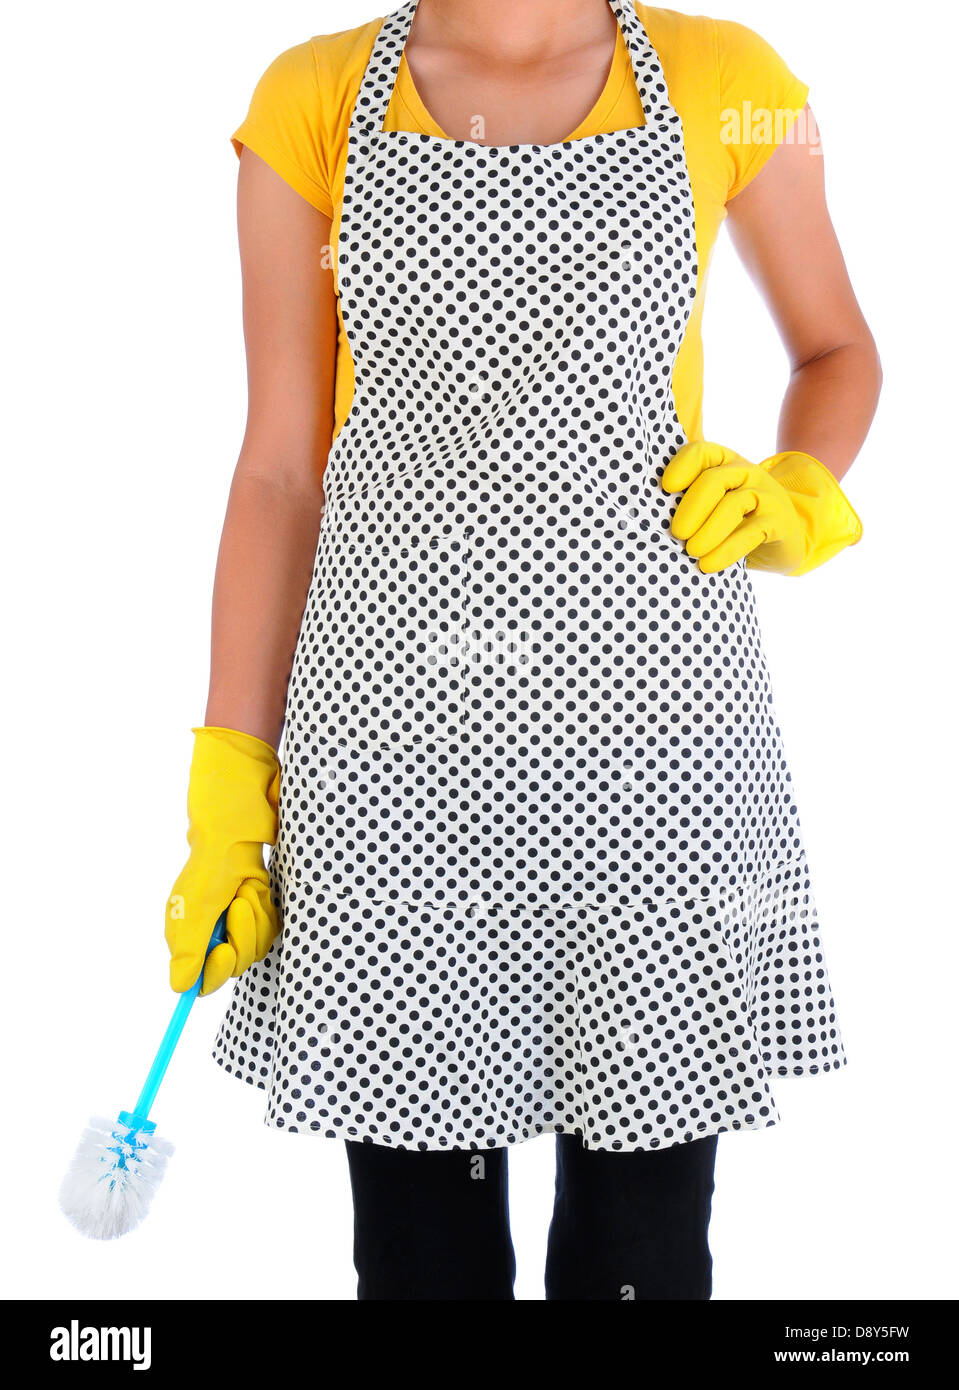 Closeup of a woman in an polka dot apron holding a toilet scrub brush. Woman has on yellow rubber gloves and is - Stock Image